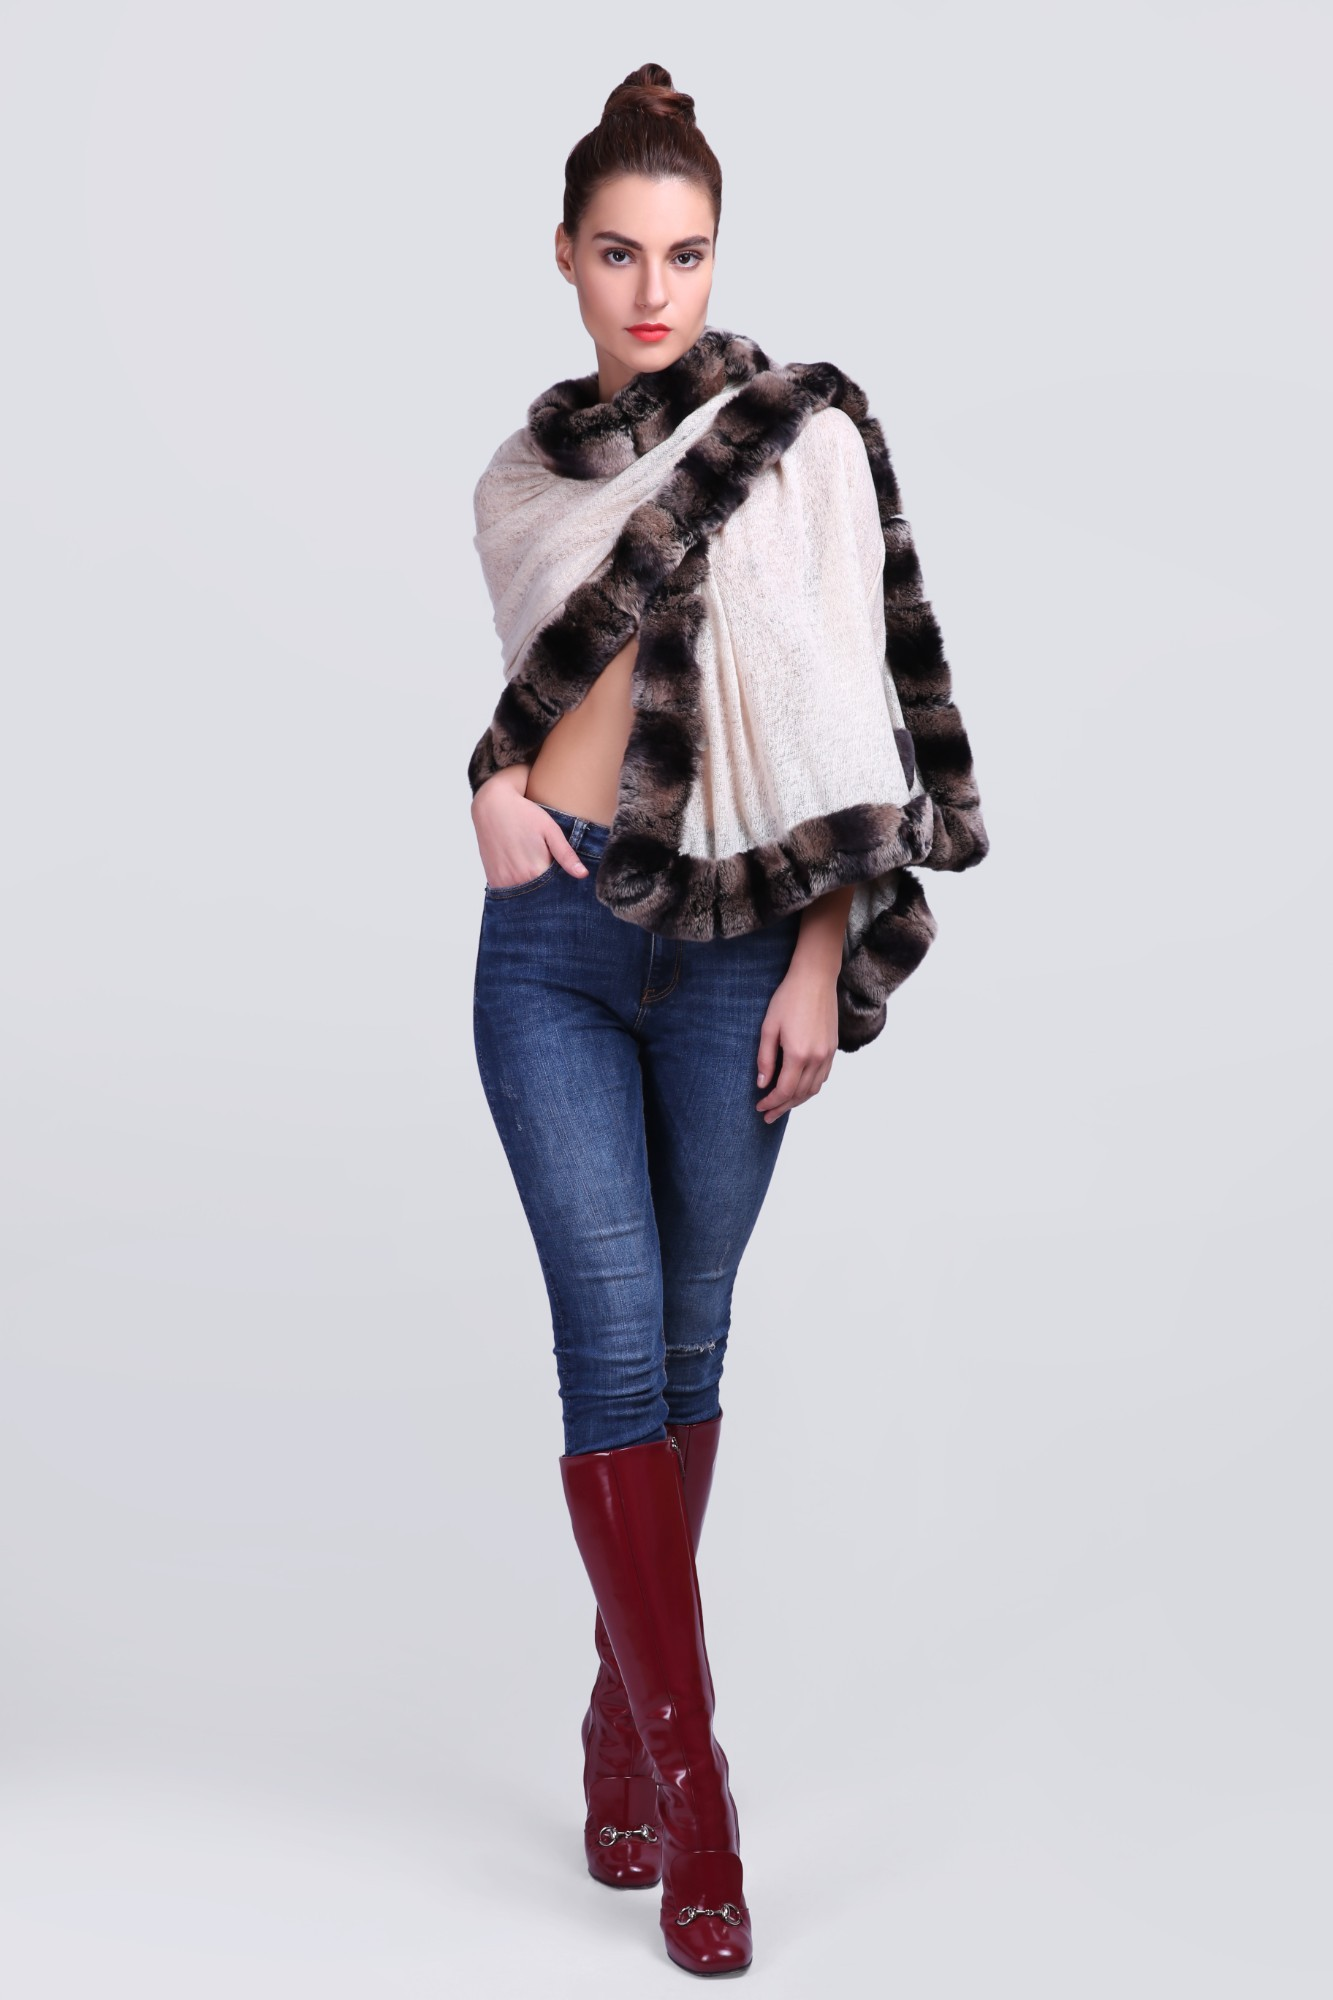 Handcrafted Cashmere with Fur - 12254 Beige